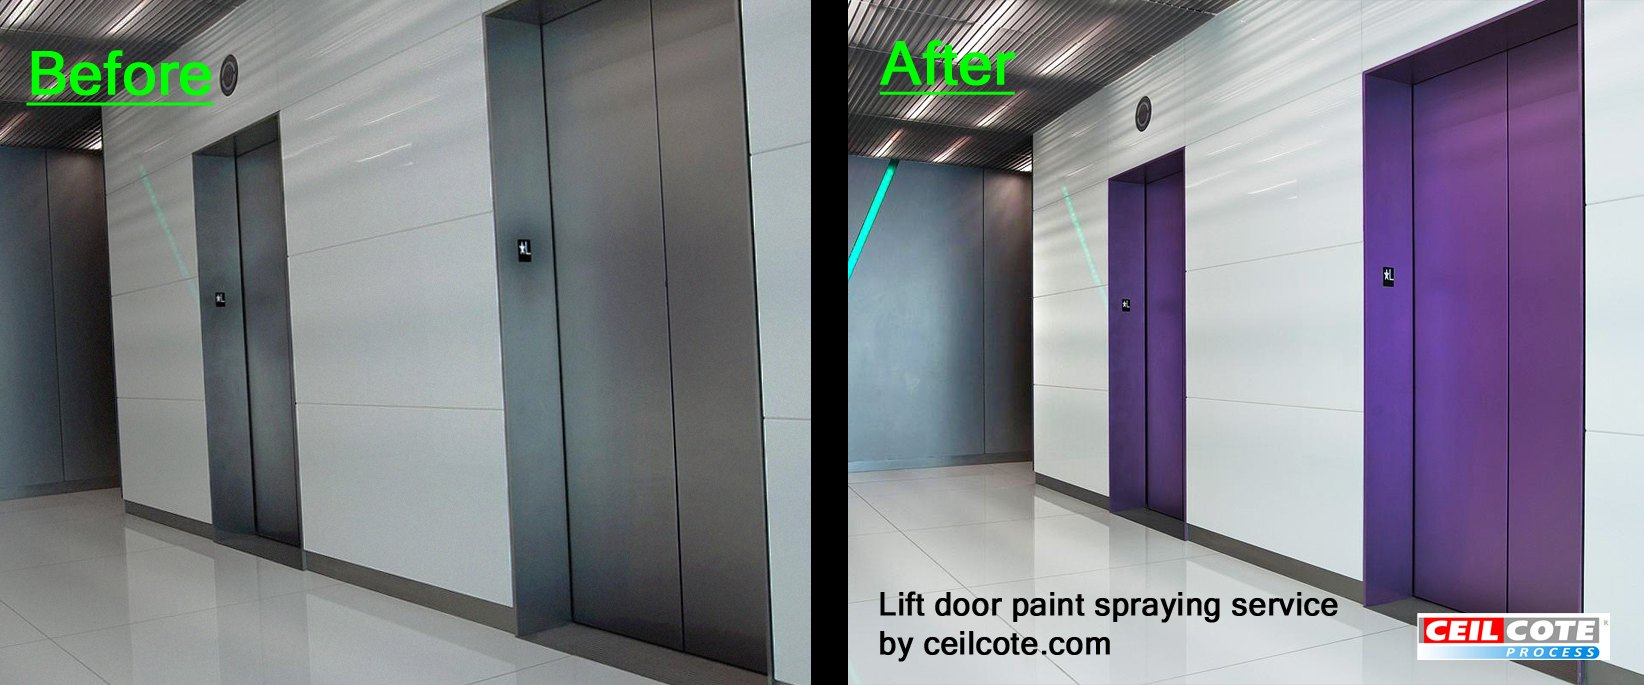 Lift doors spray painted purple by ceilcote before and after photos